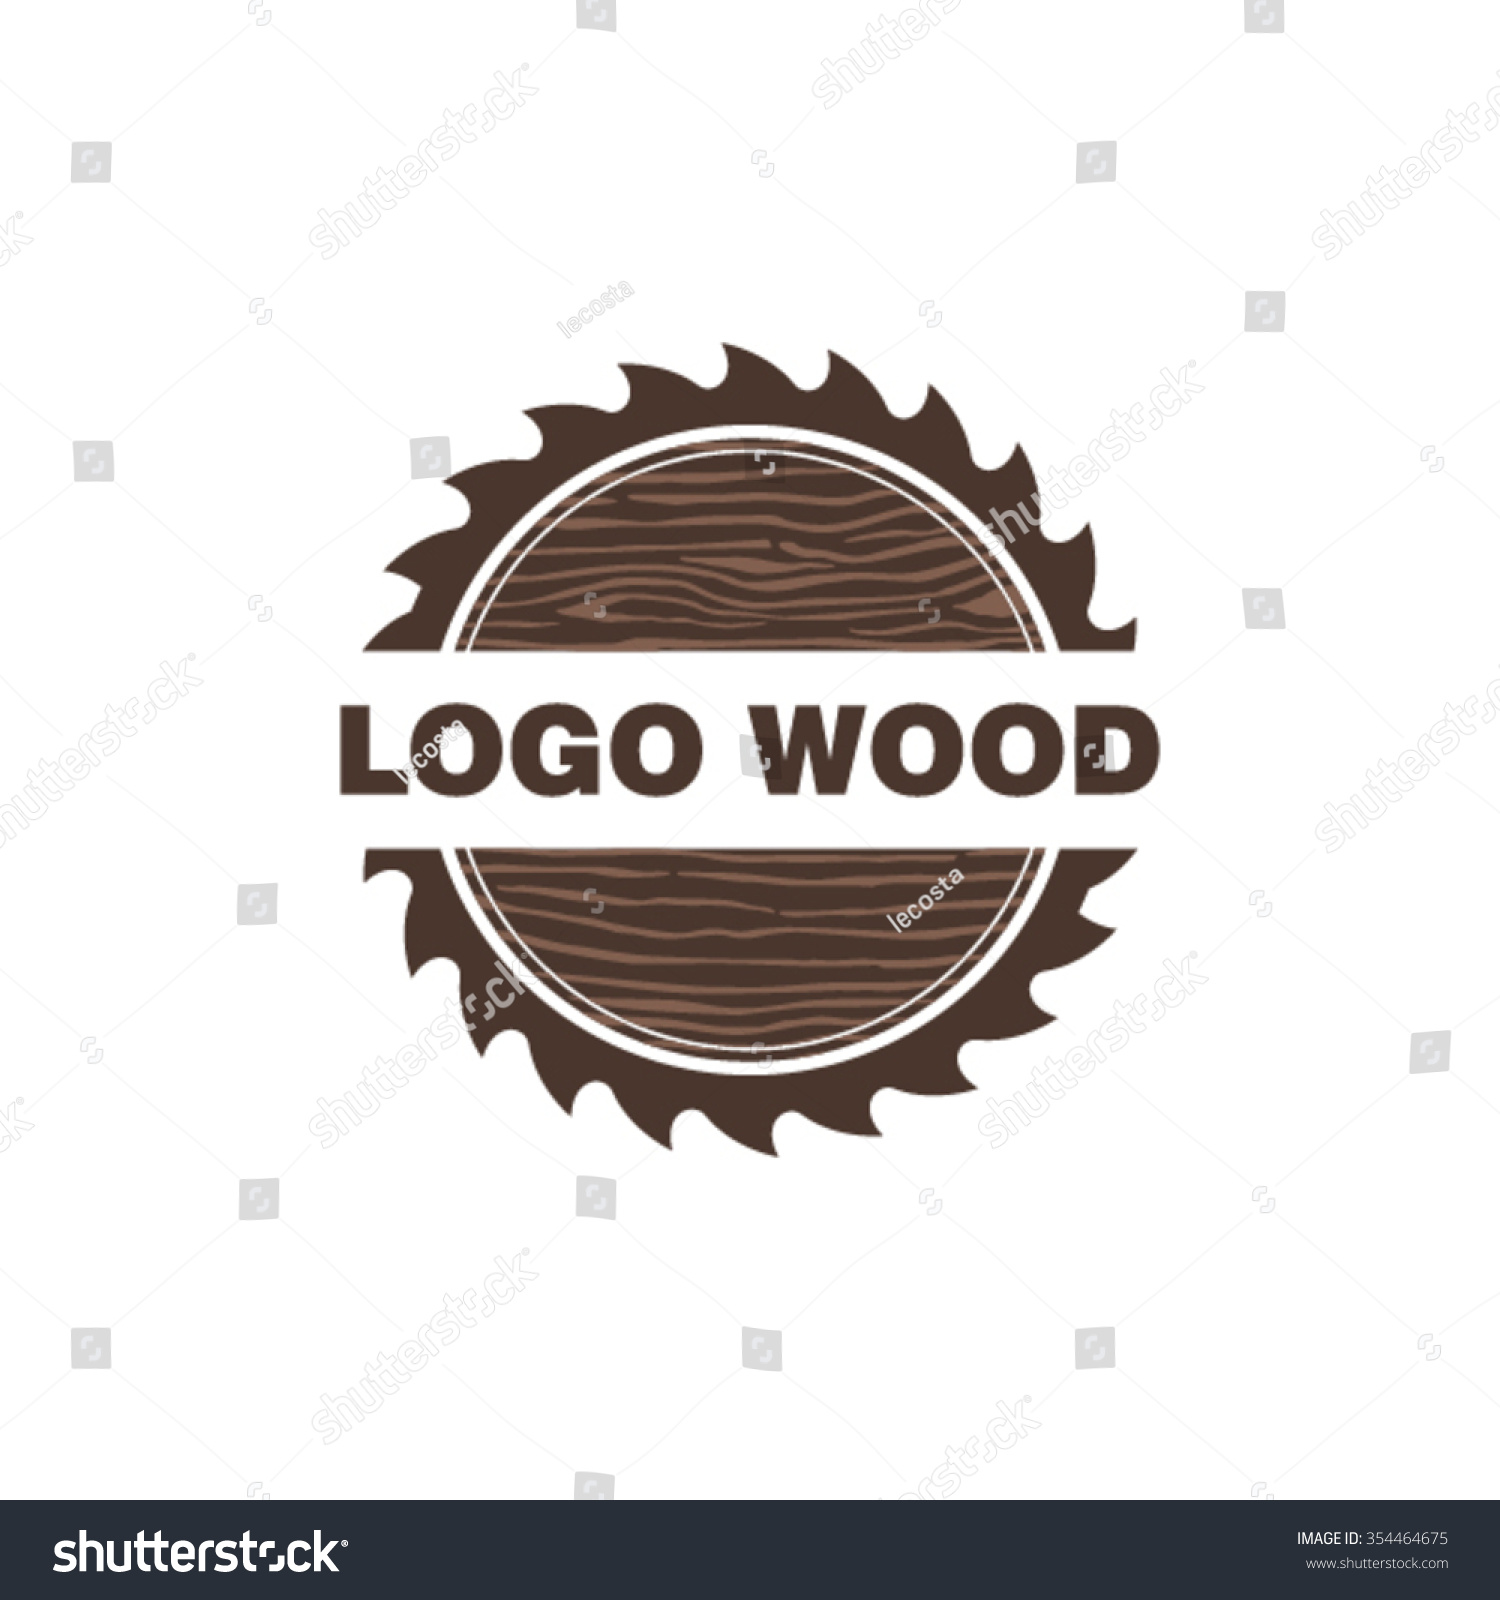 Woods Lumber Logo ~ Woodworking logo design stock vector shutterstock